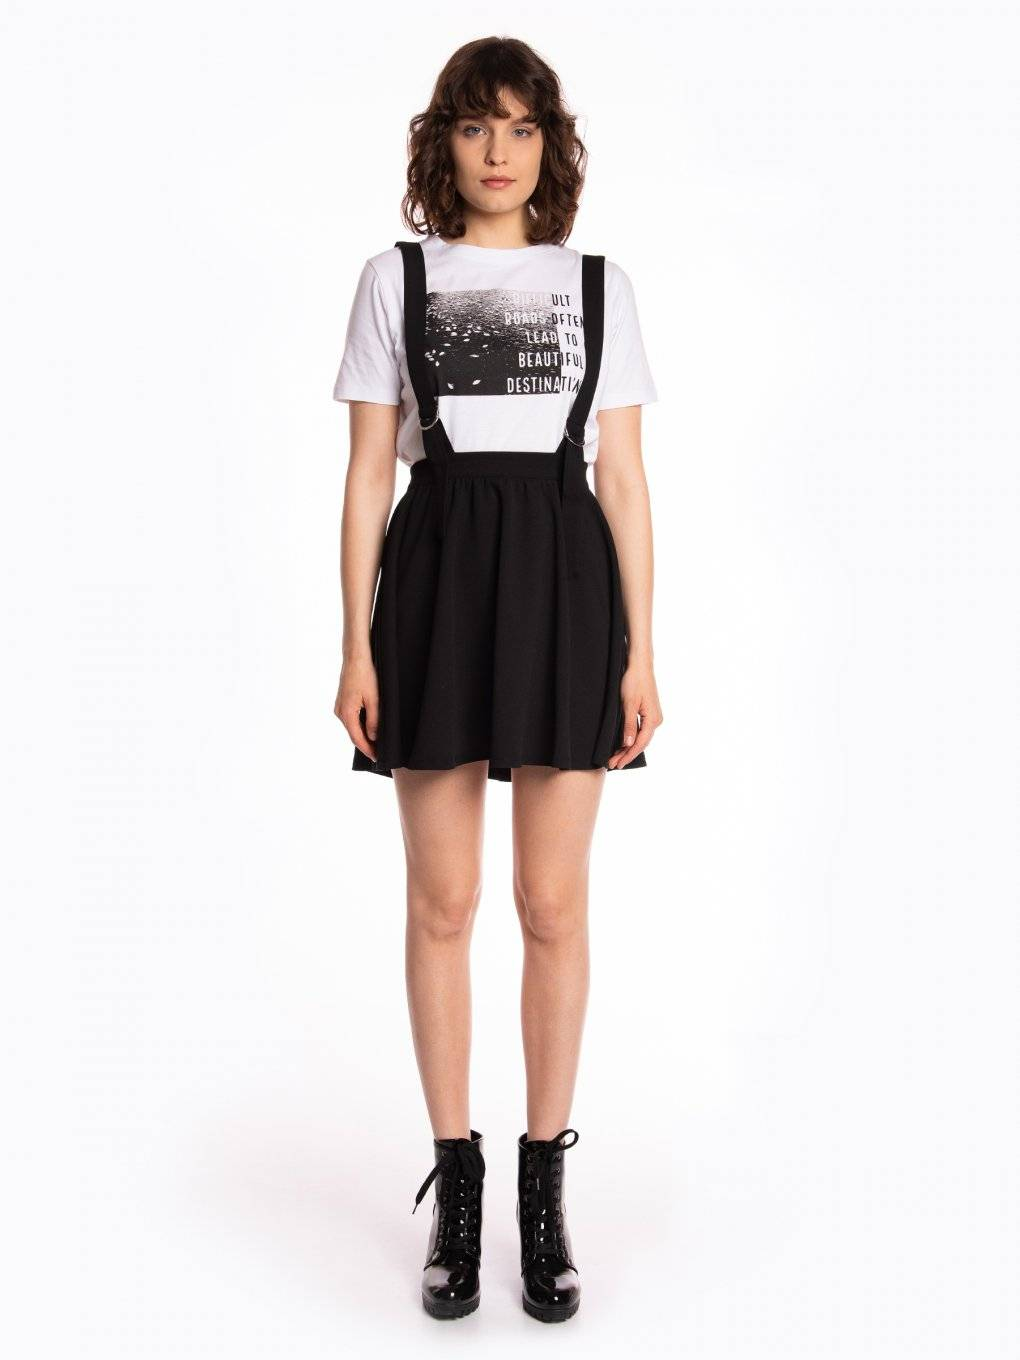 Skater skirt with braces